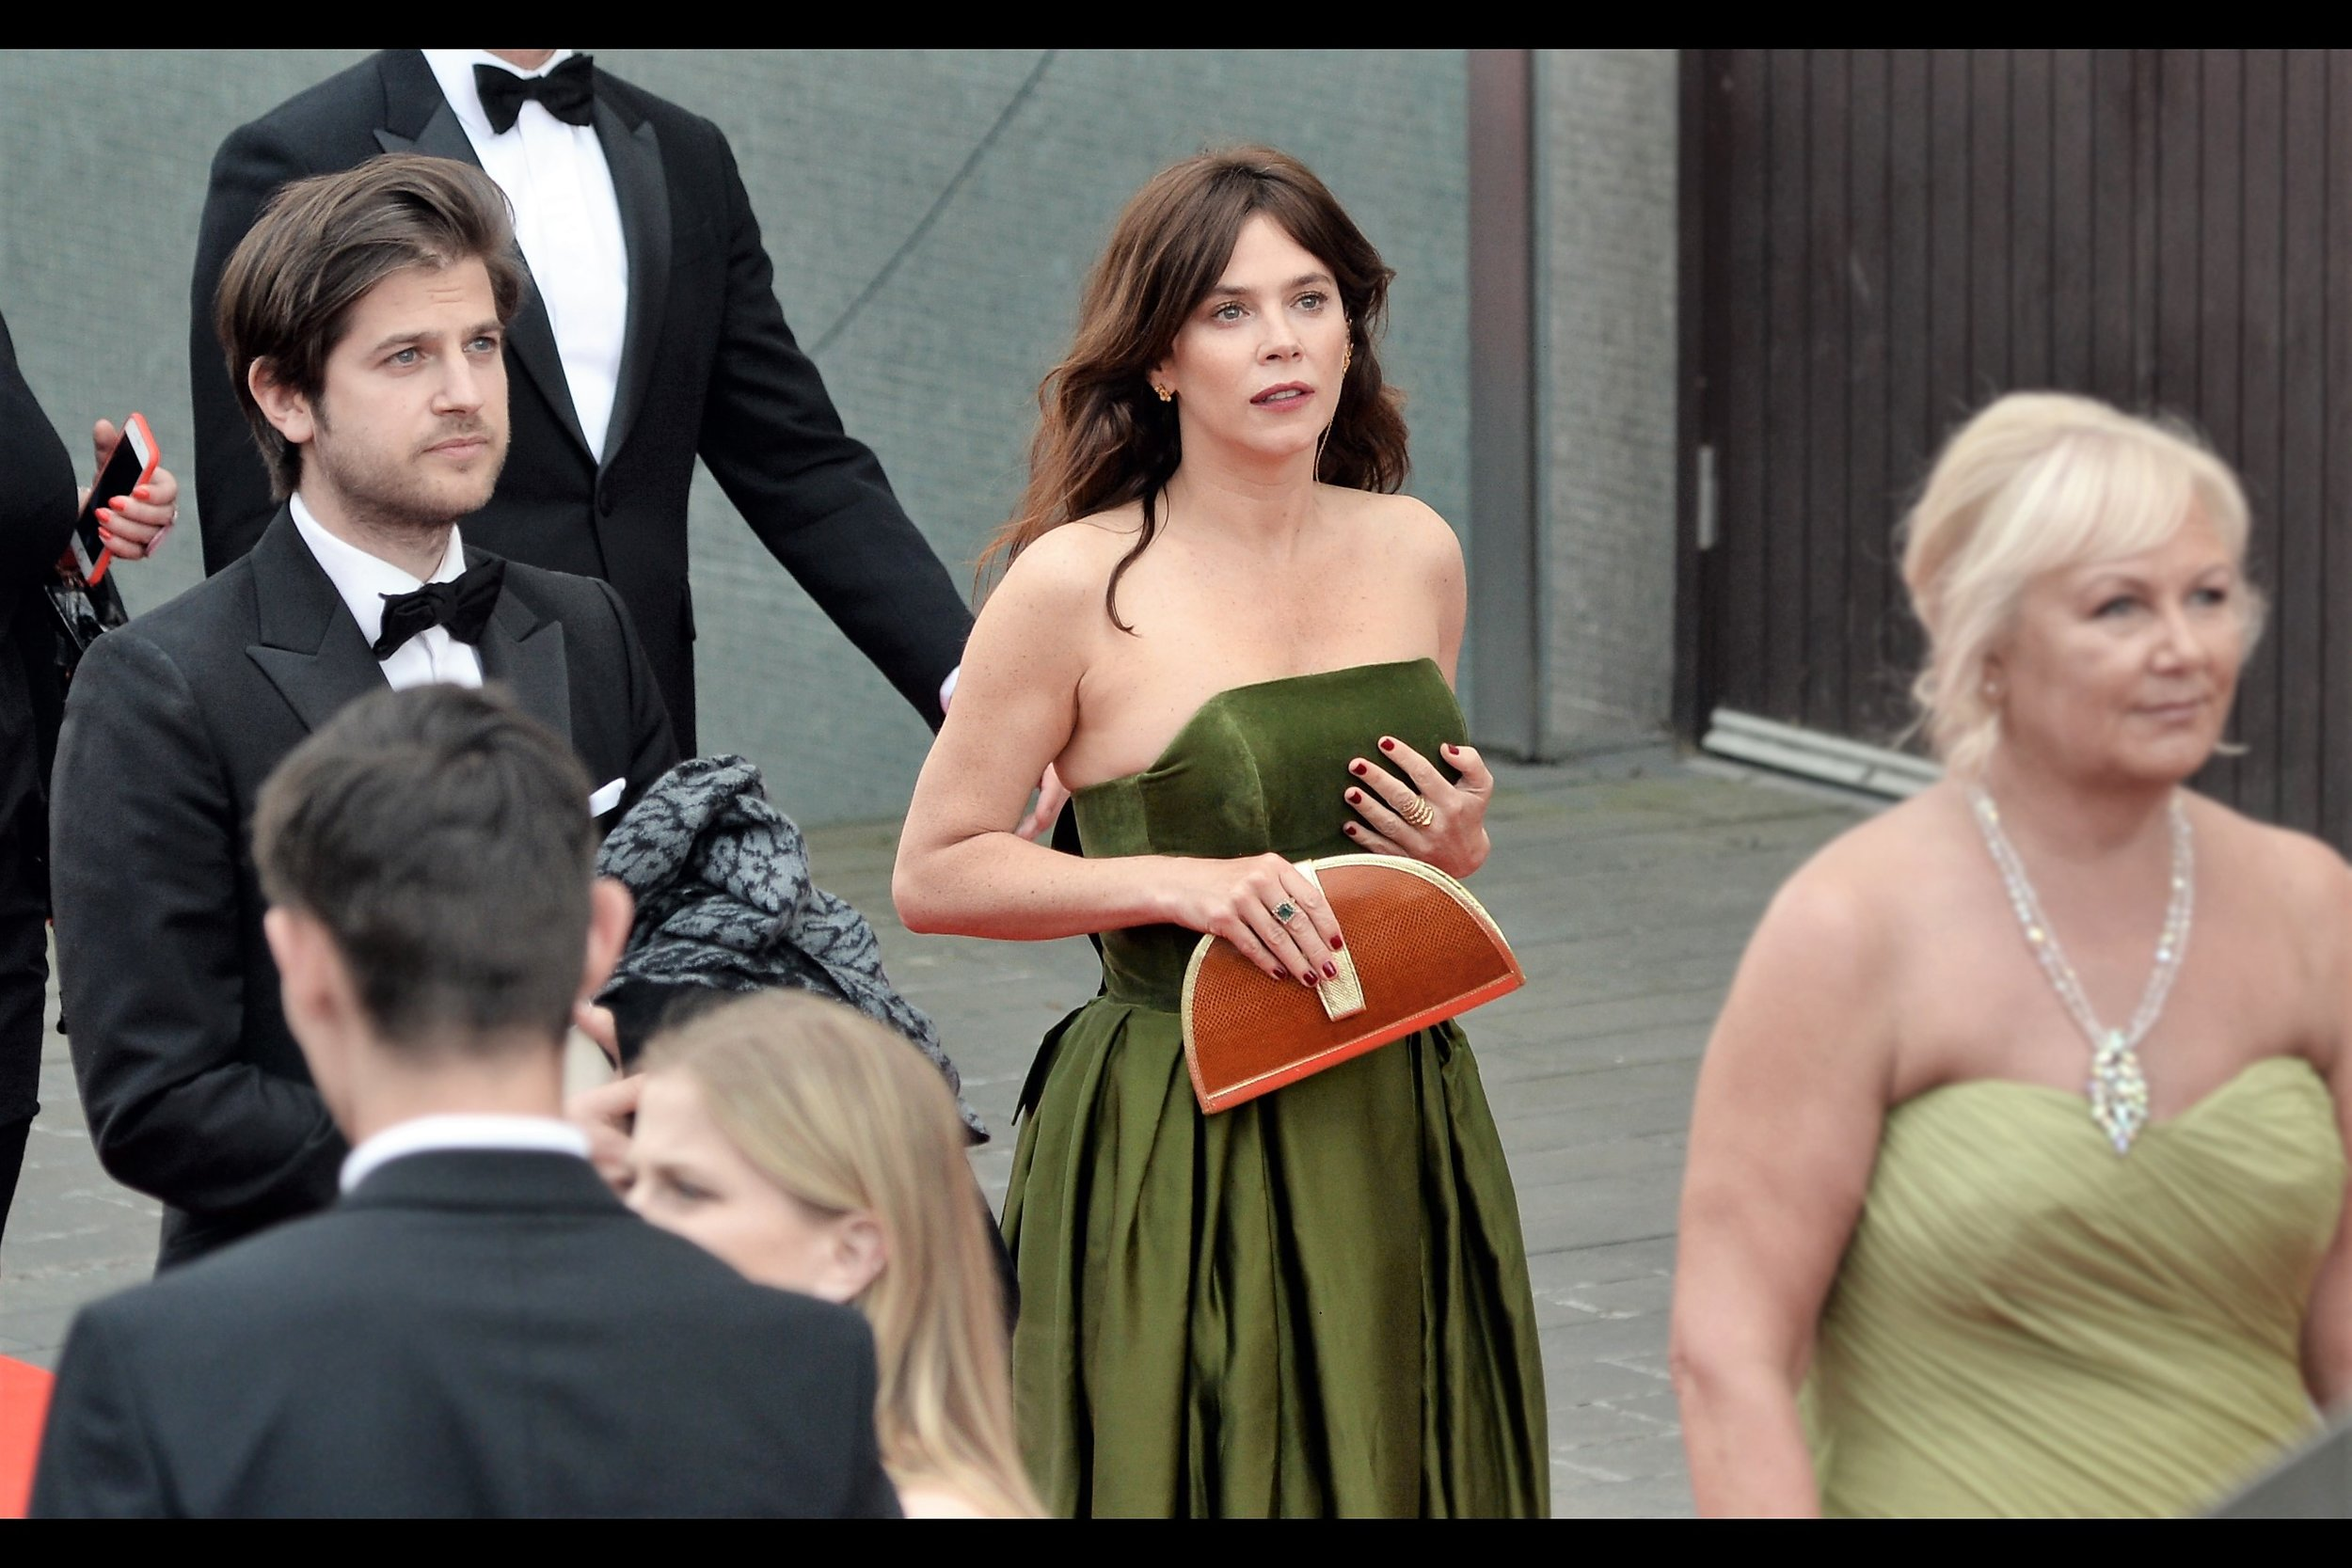 """Anna Friel's imdb filmography (I refuse to acknowledge TV shows I don't watch, even at the Baftas) reveals strange movies like """"Land of the Lost"""" with Will Ferrell, and the movie """"Timeline"""" with Paul Walker... and """"Limitless"""" with Bradley Cooper. But that shade of dress is pretty great."""